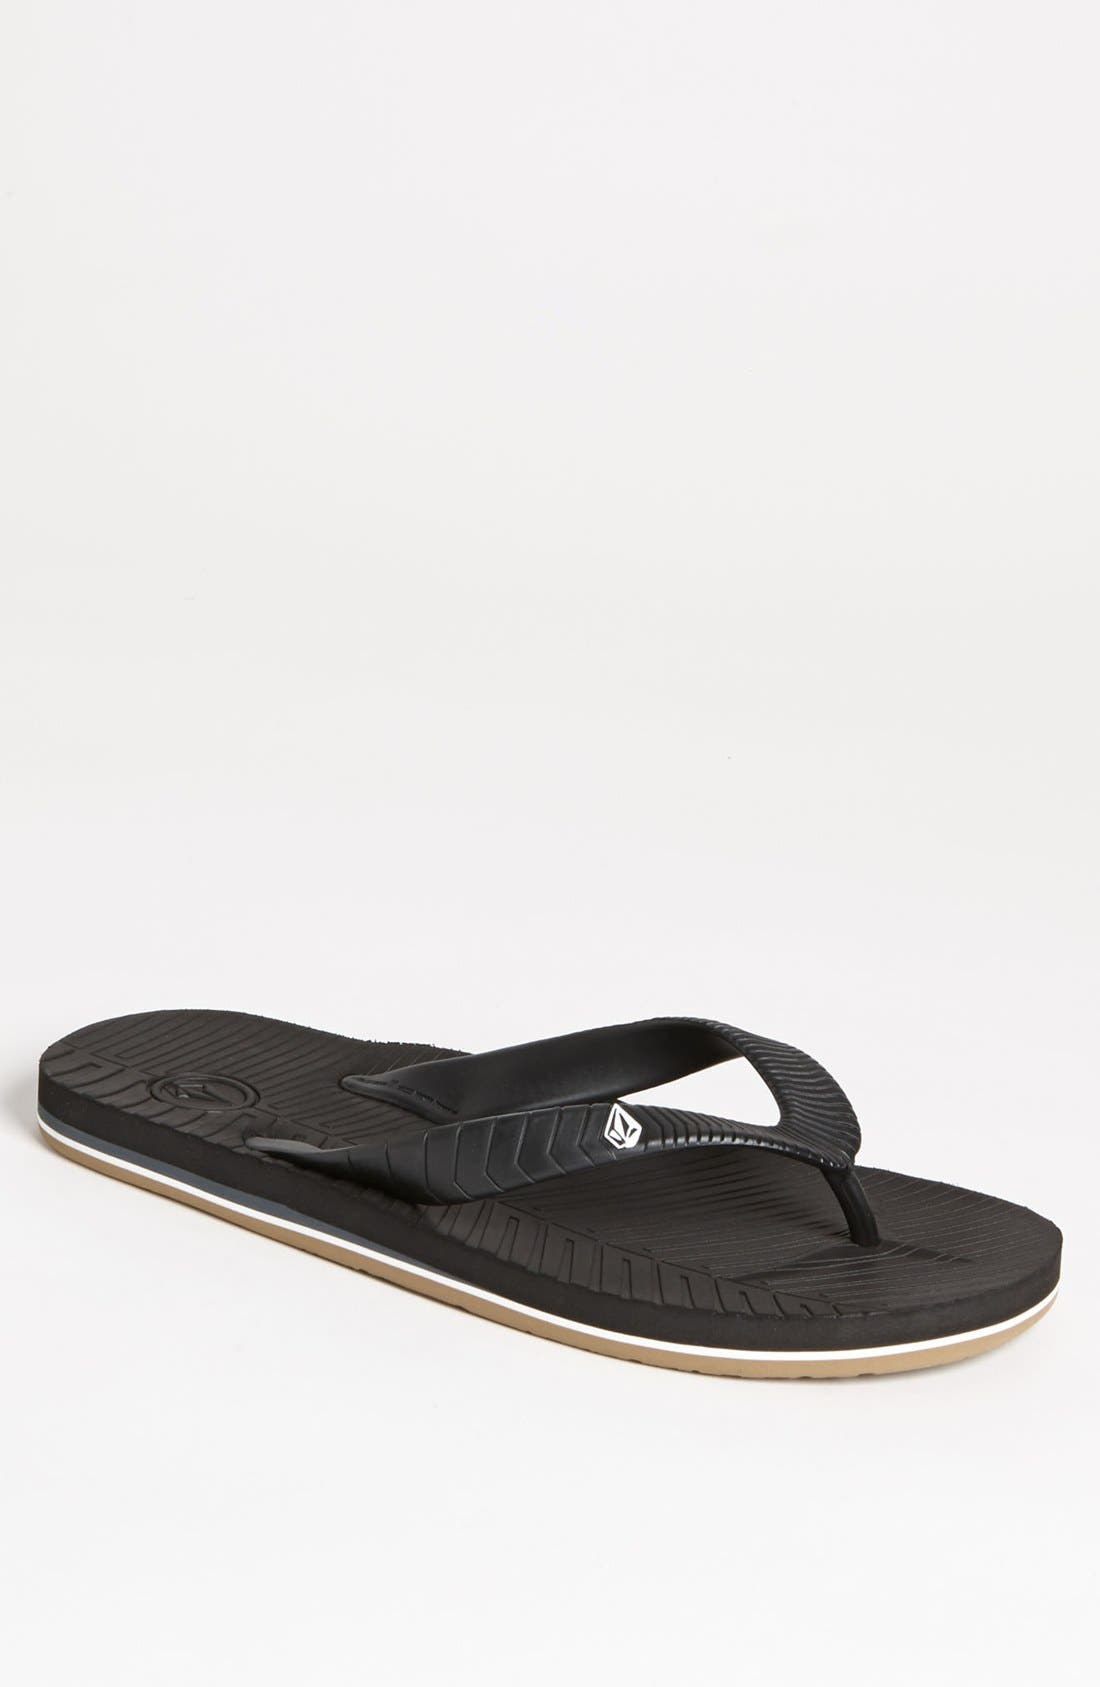 Alternate Image 1 Selected - Volcom 'Concourse' Flip Flop (Men)